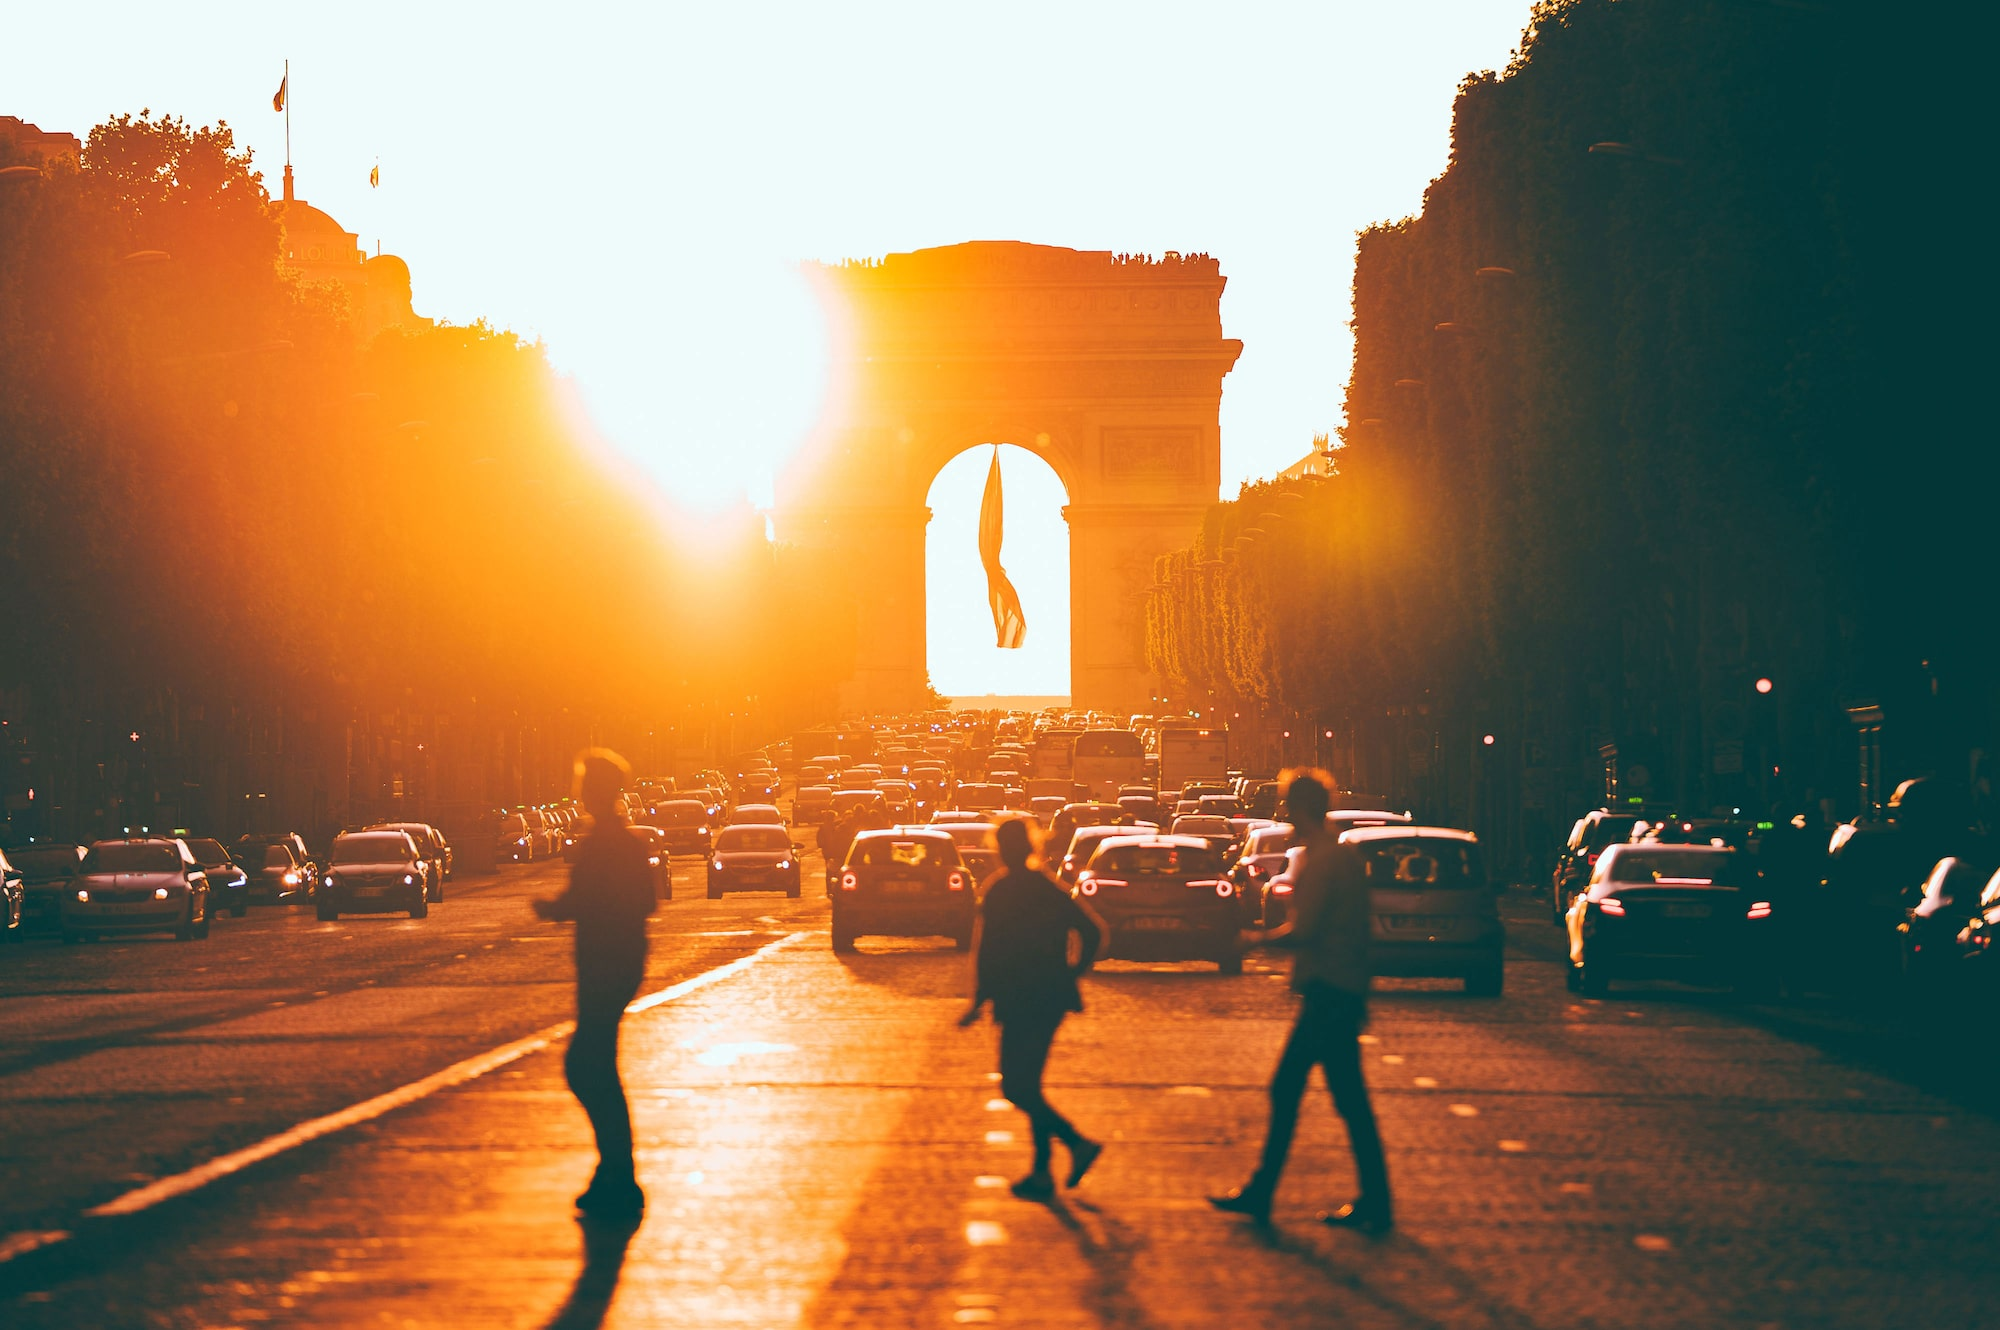 People crossing road in front of Arc de Triomphe in Paris